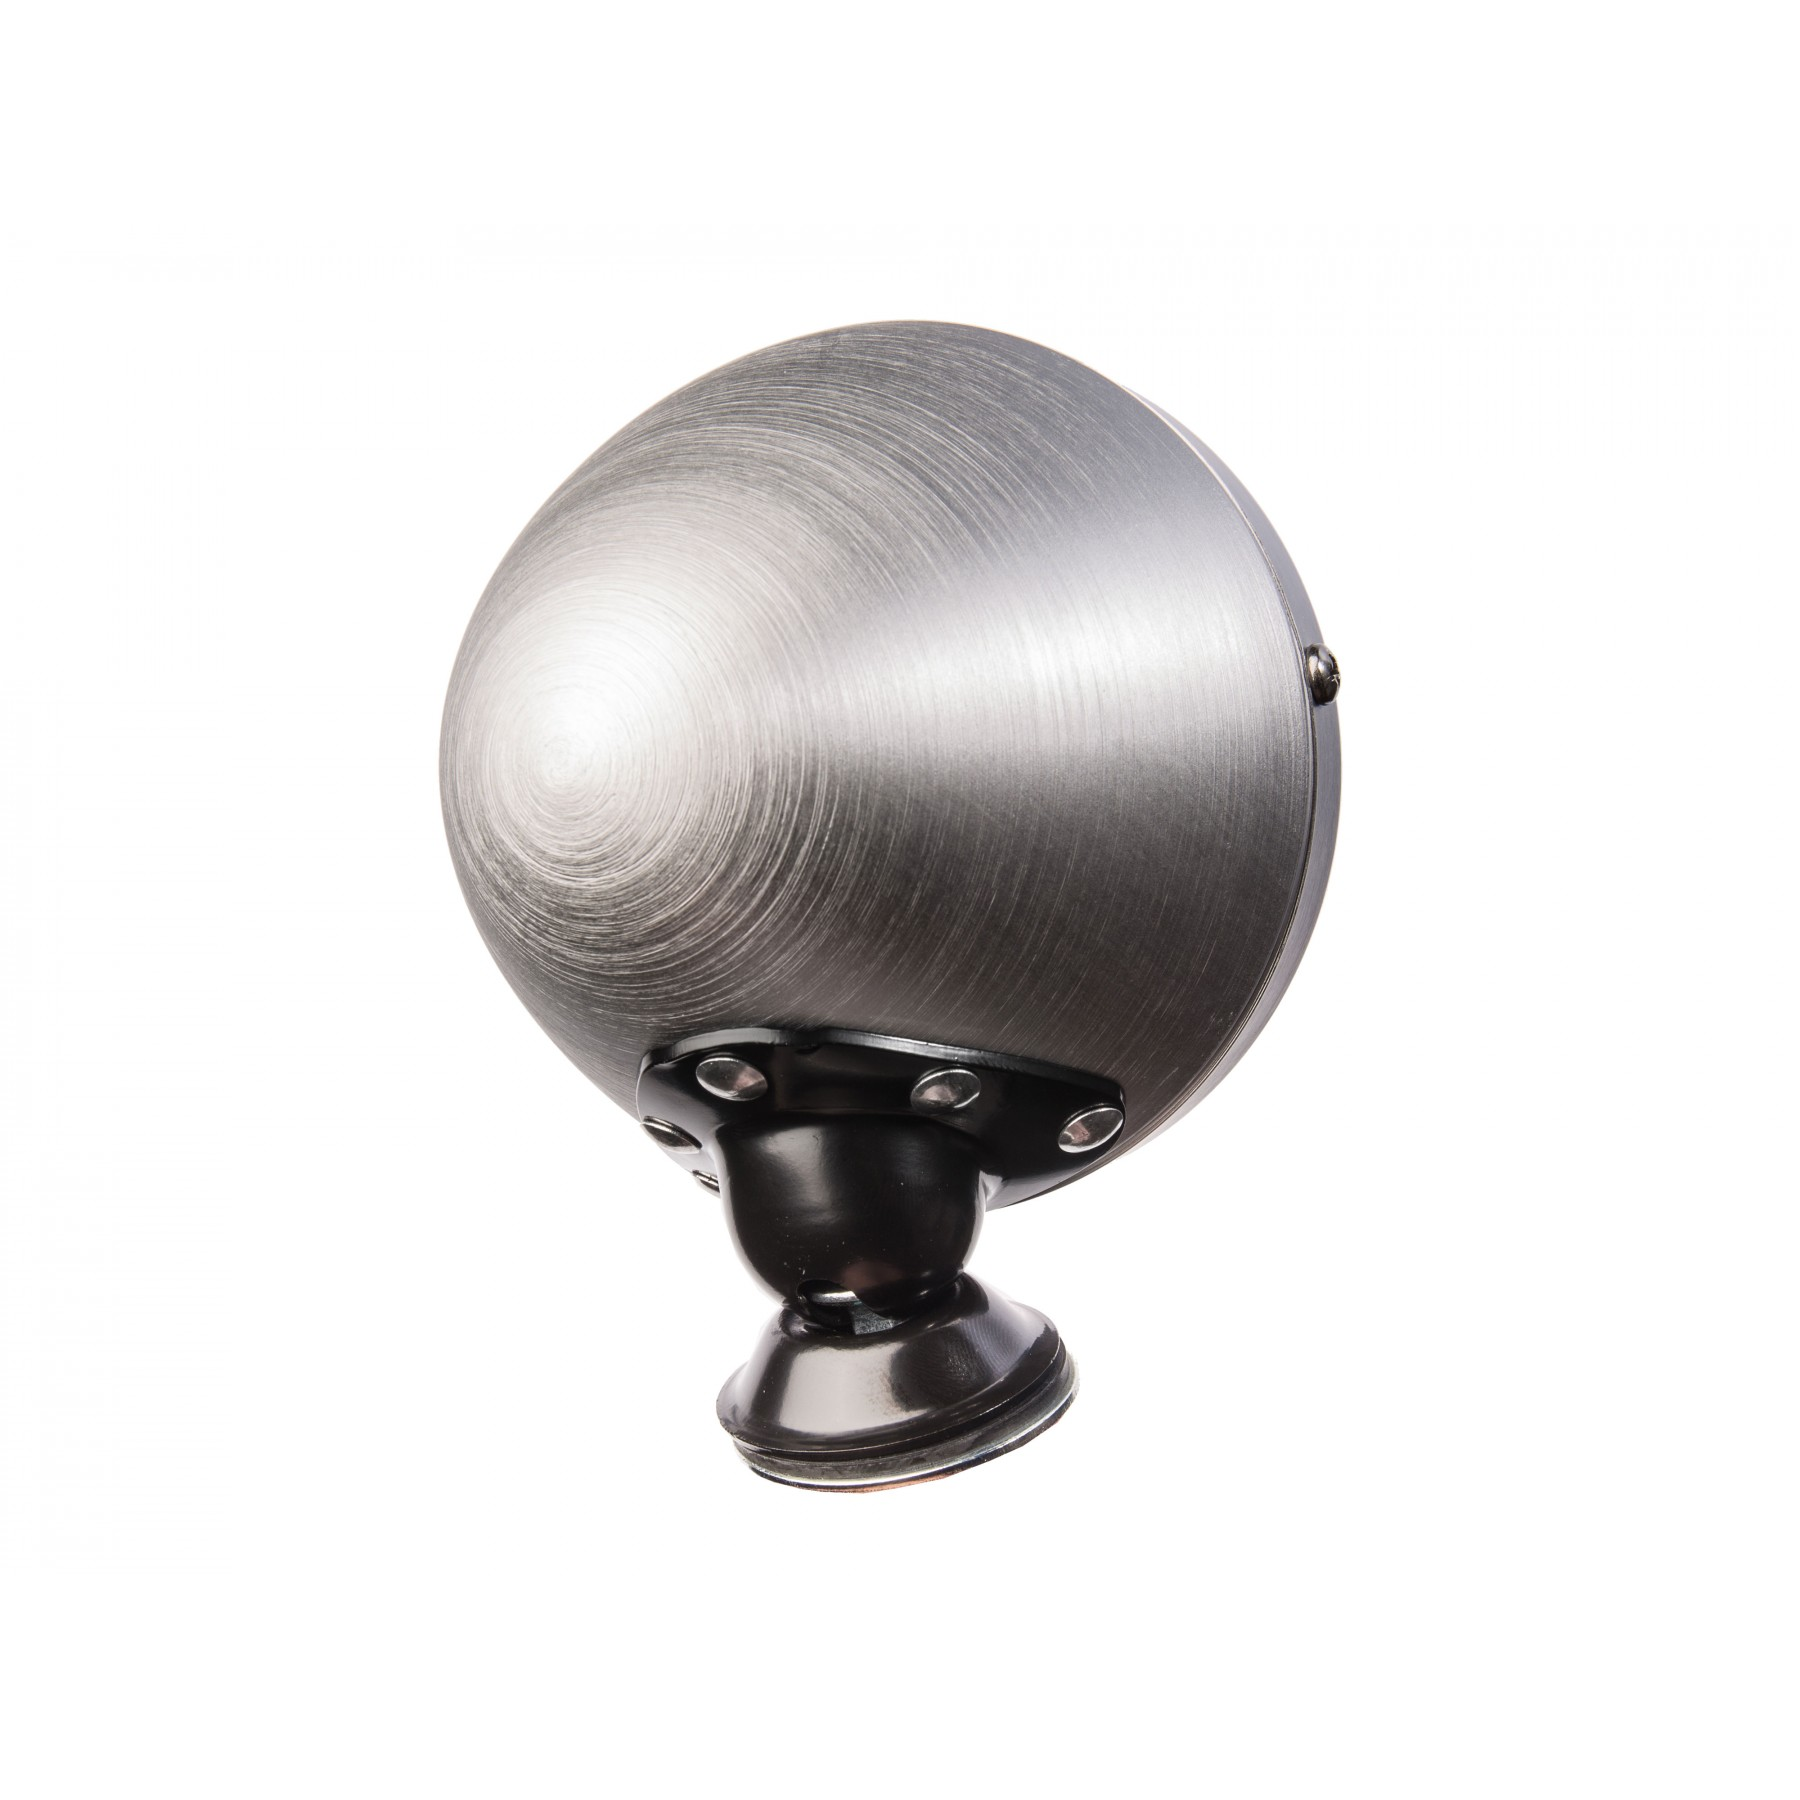 HISTORIC BULLET MIRRORS - BRUSHED ALLOY